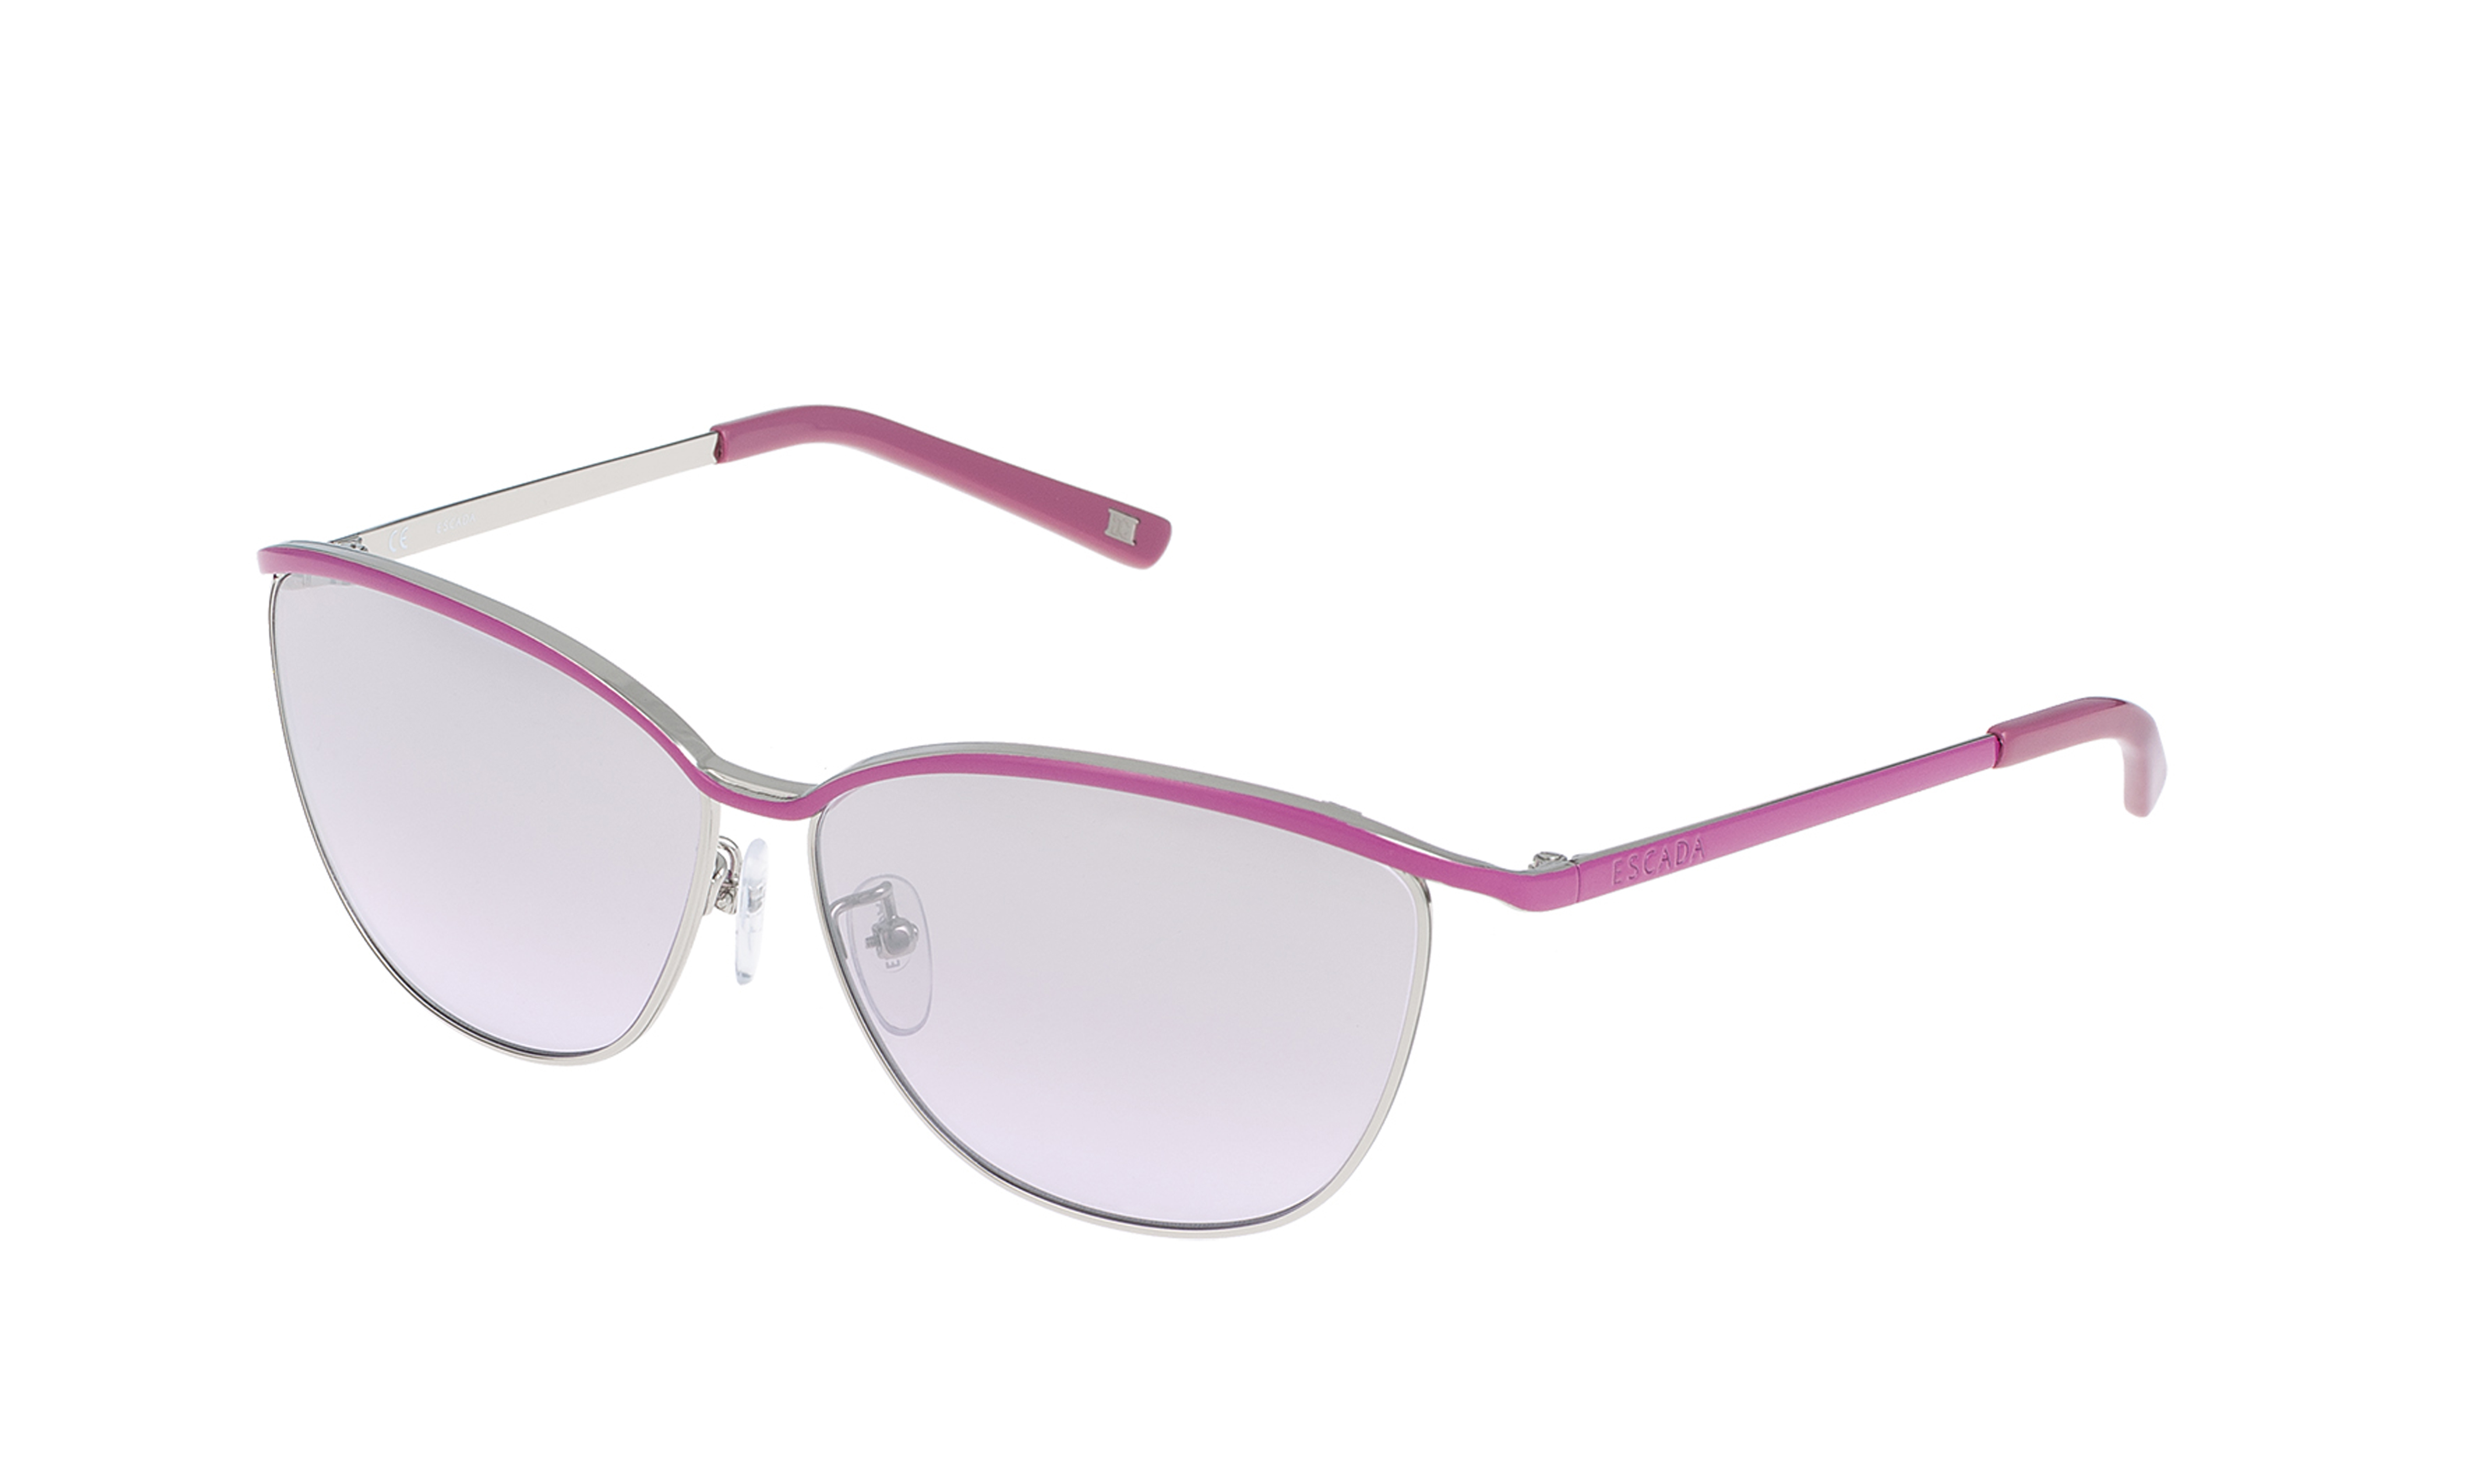 4b349926077 Escada AED 1300. Each pair from the collection is featuring a delicate